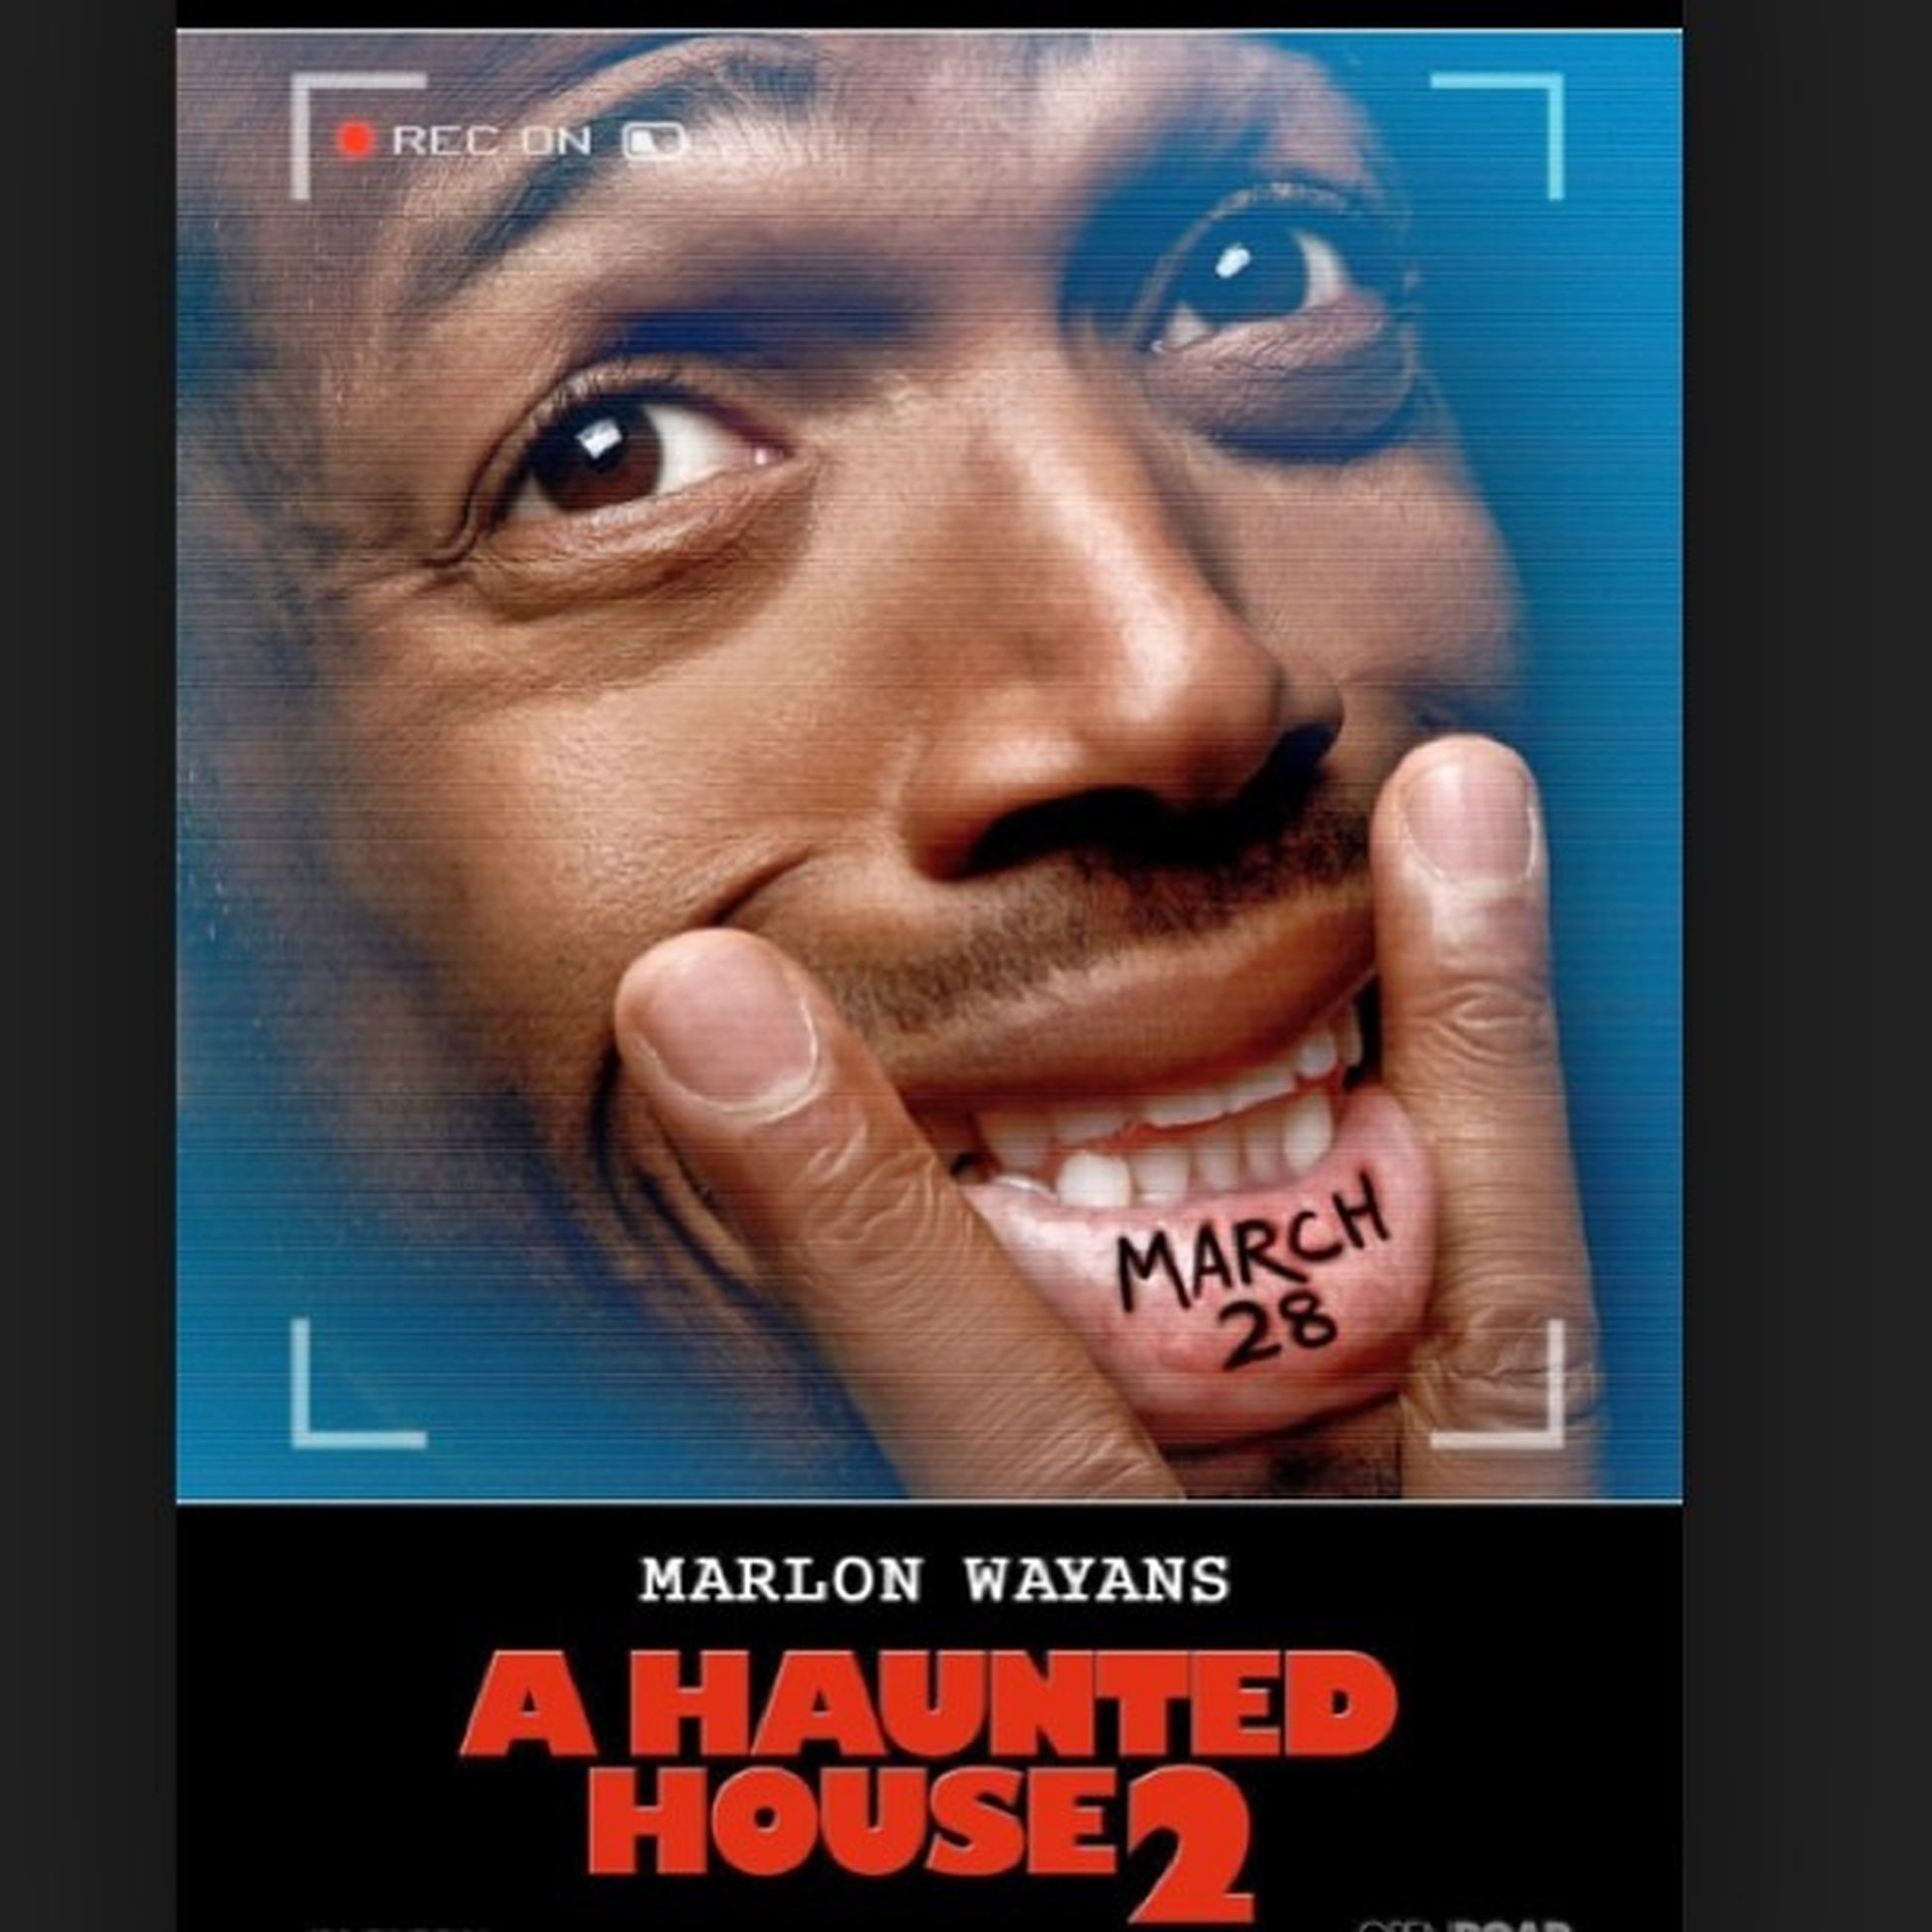 This movie funny af' lol AHauntedHouse2 Nightmade